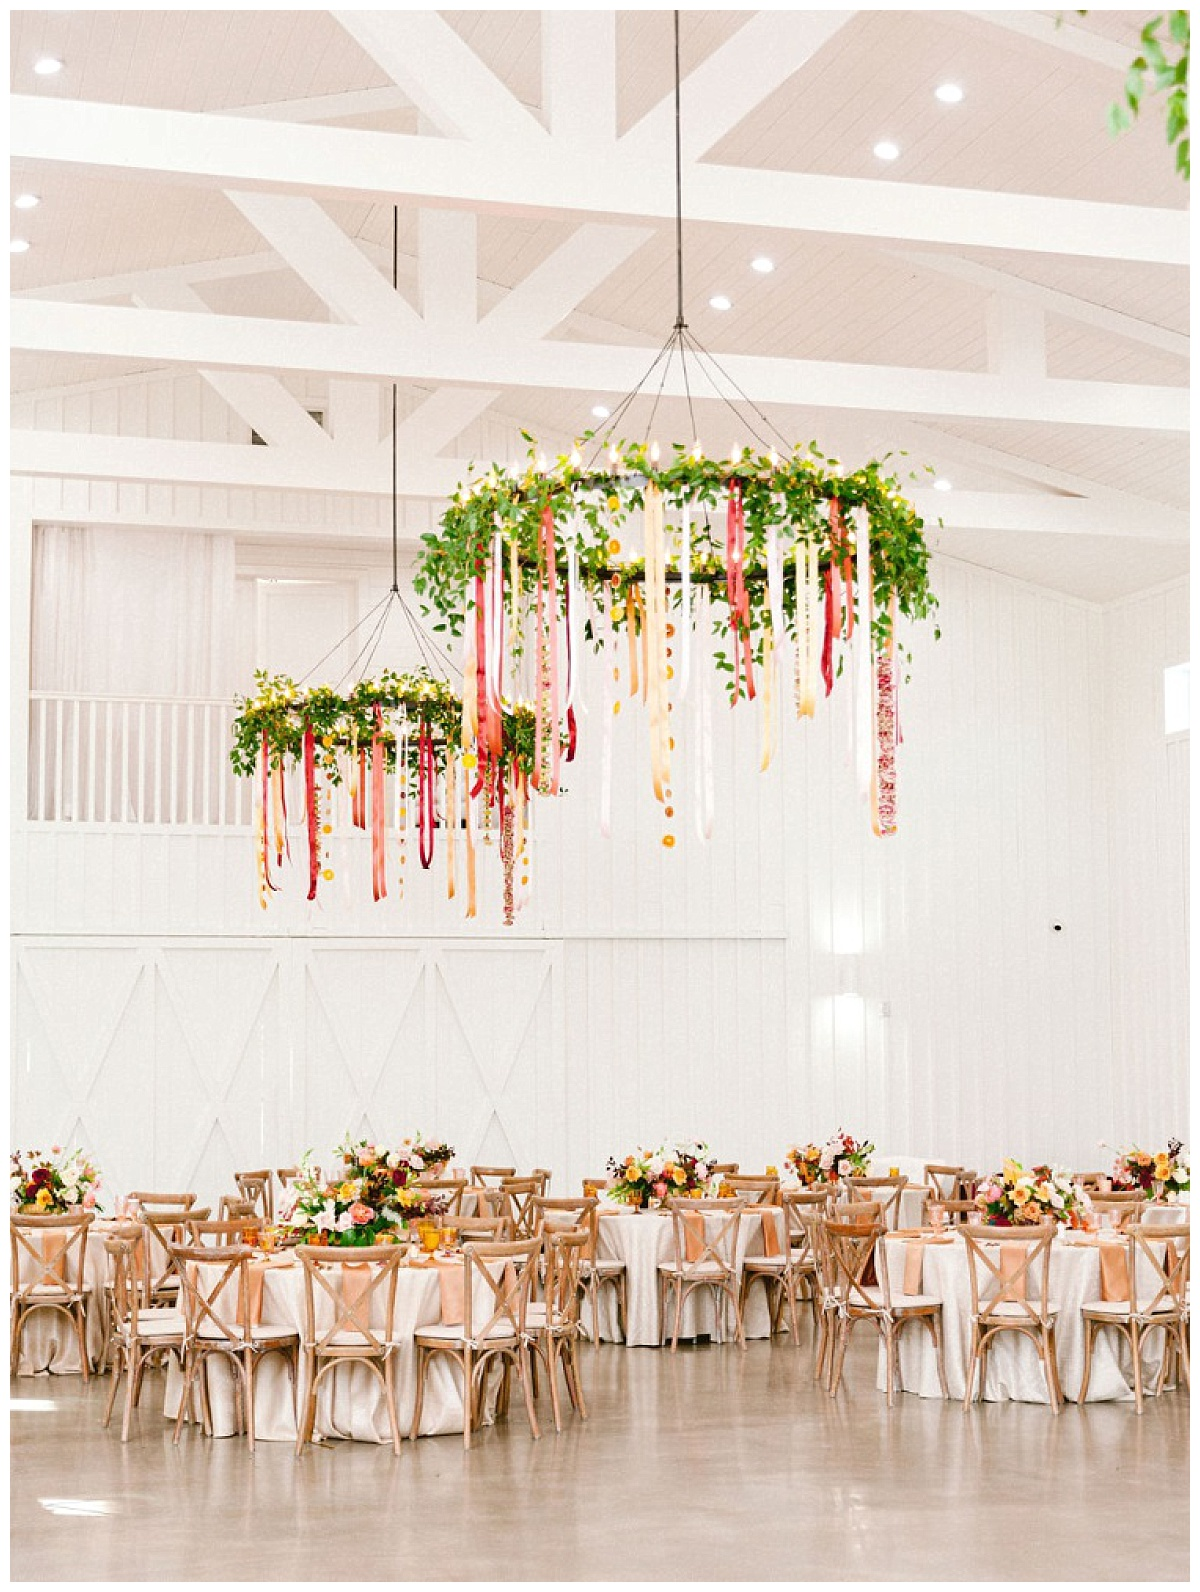 Full Reception space view of decorated tables and chadeliers | The Farmhouse Events Real Weddings | A Summer Vision of Love | Kristin & Rob